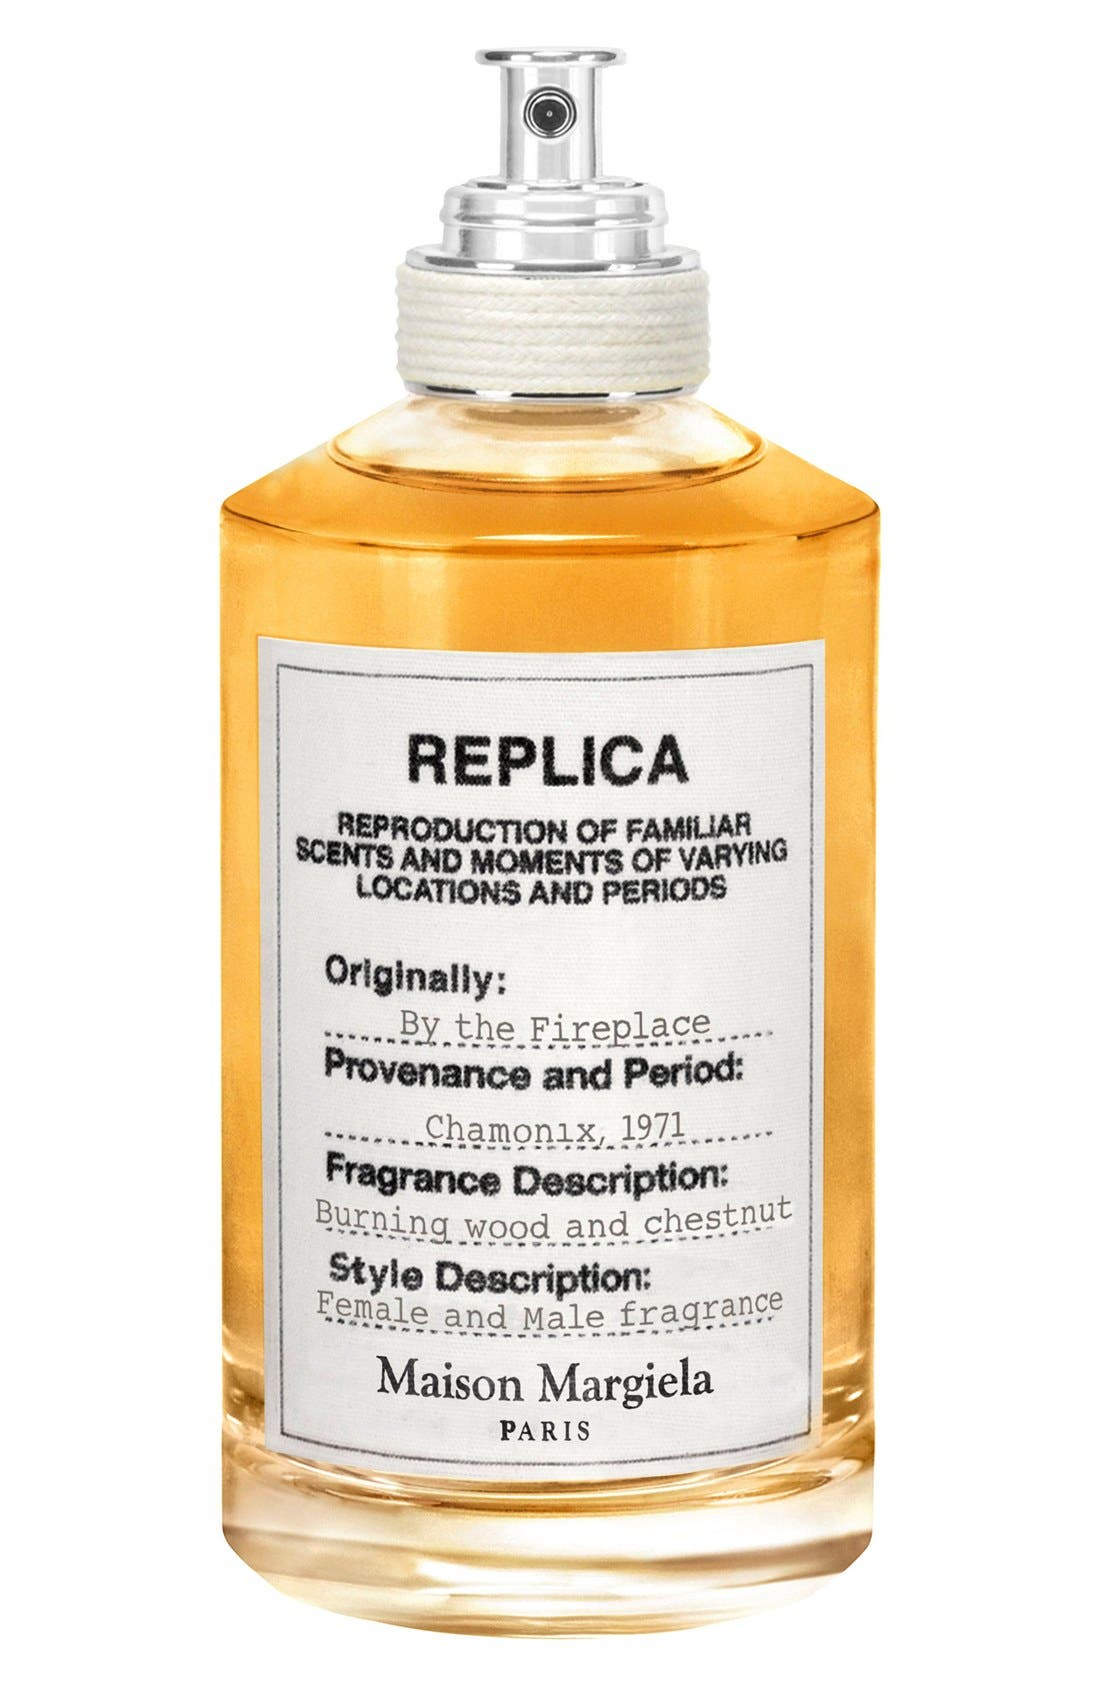 Maison Margiela Replica By the Fireplace Fragrance